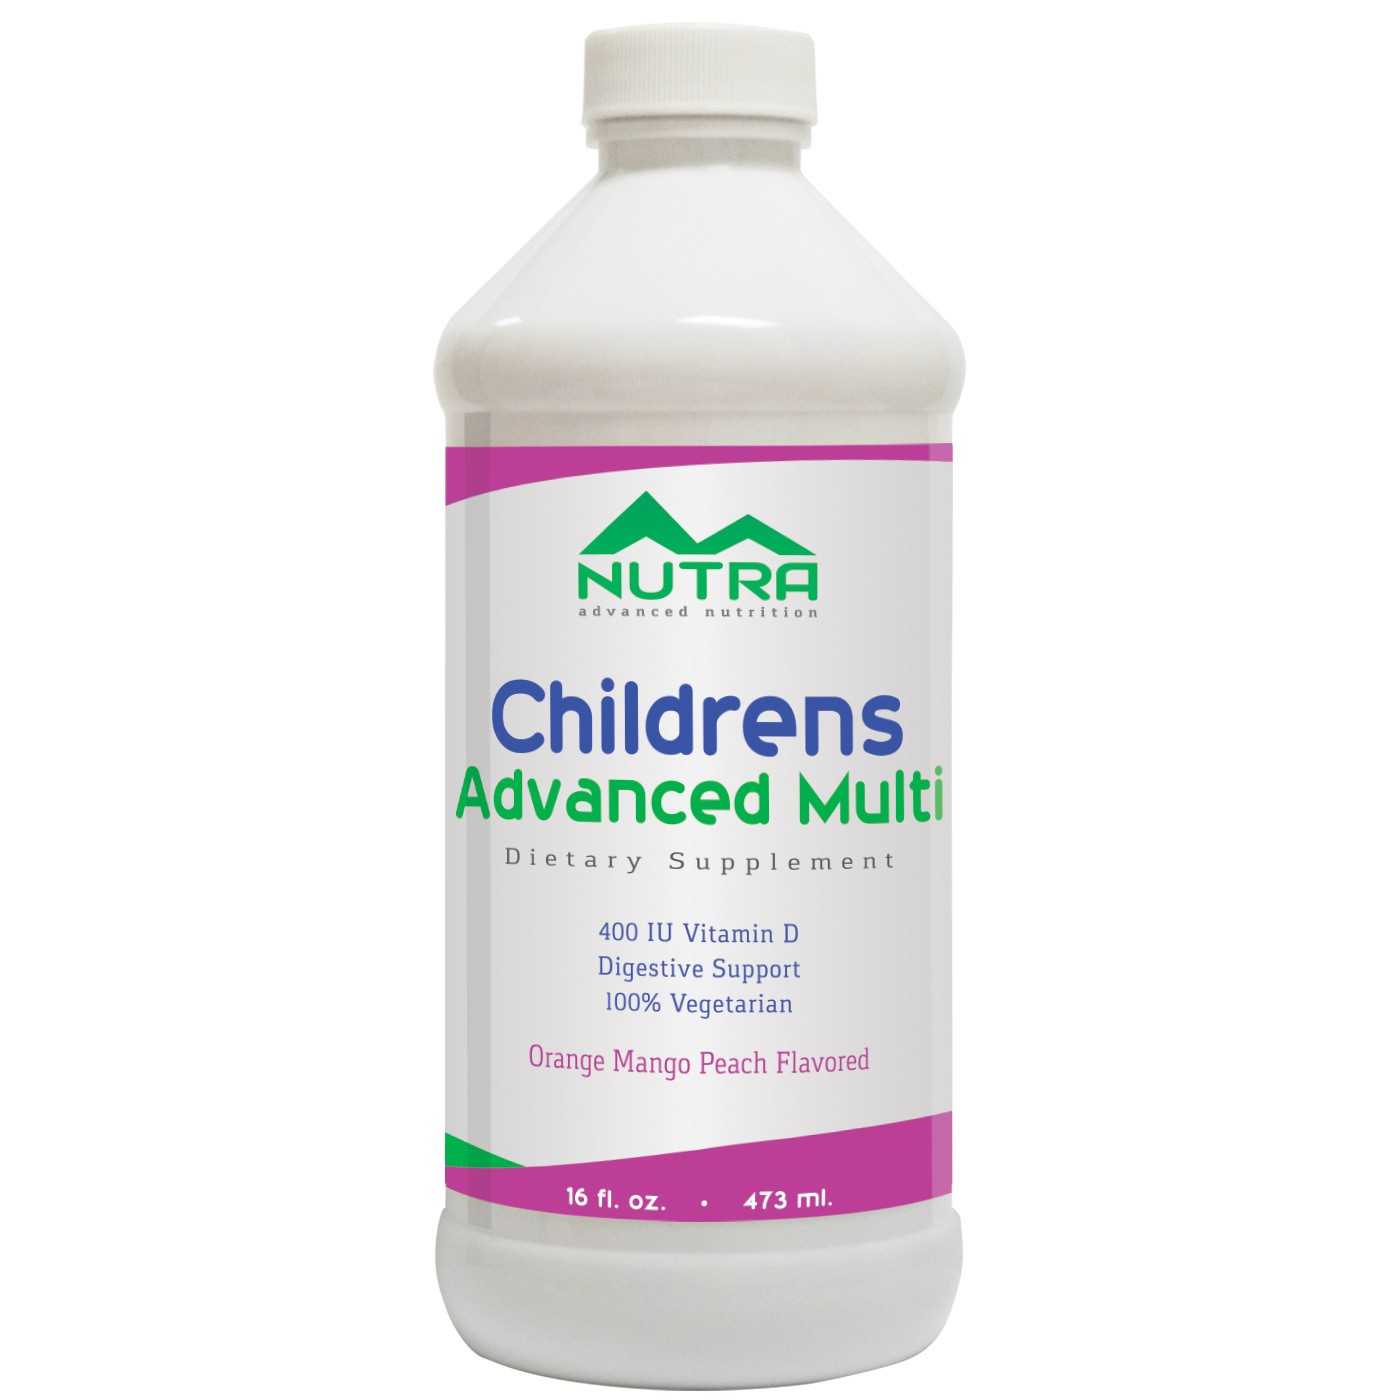 Private Label Children's Multivitamin Supplement Manufacturer